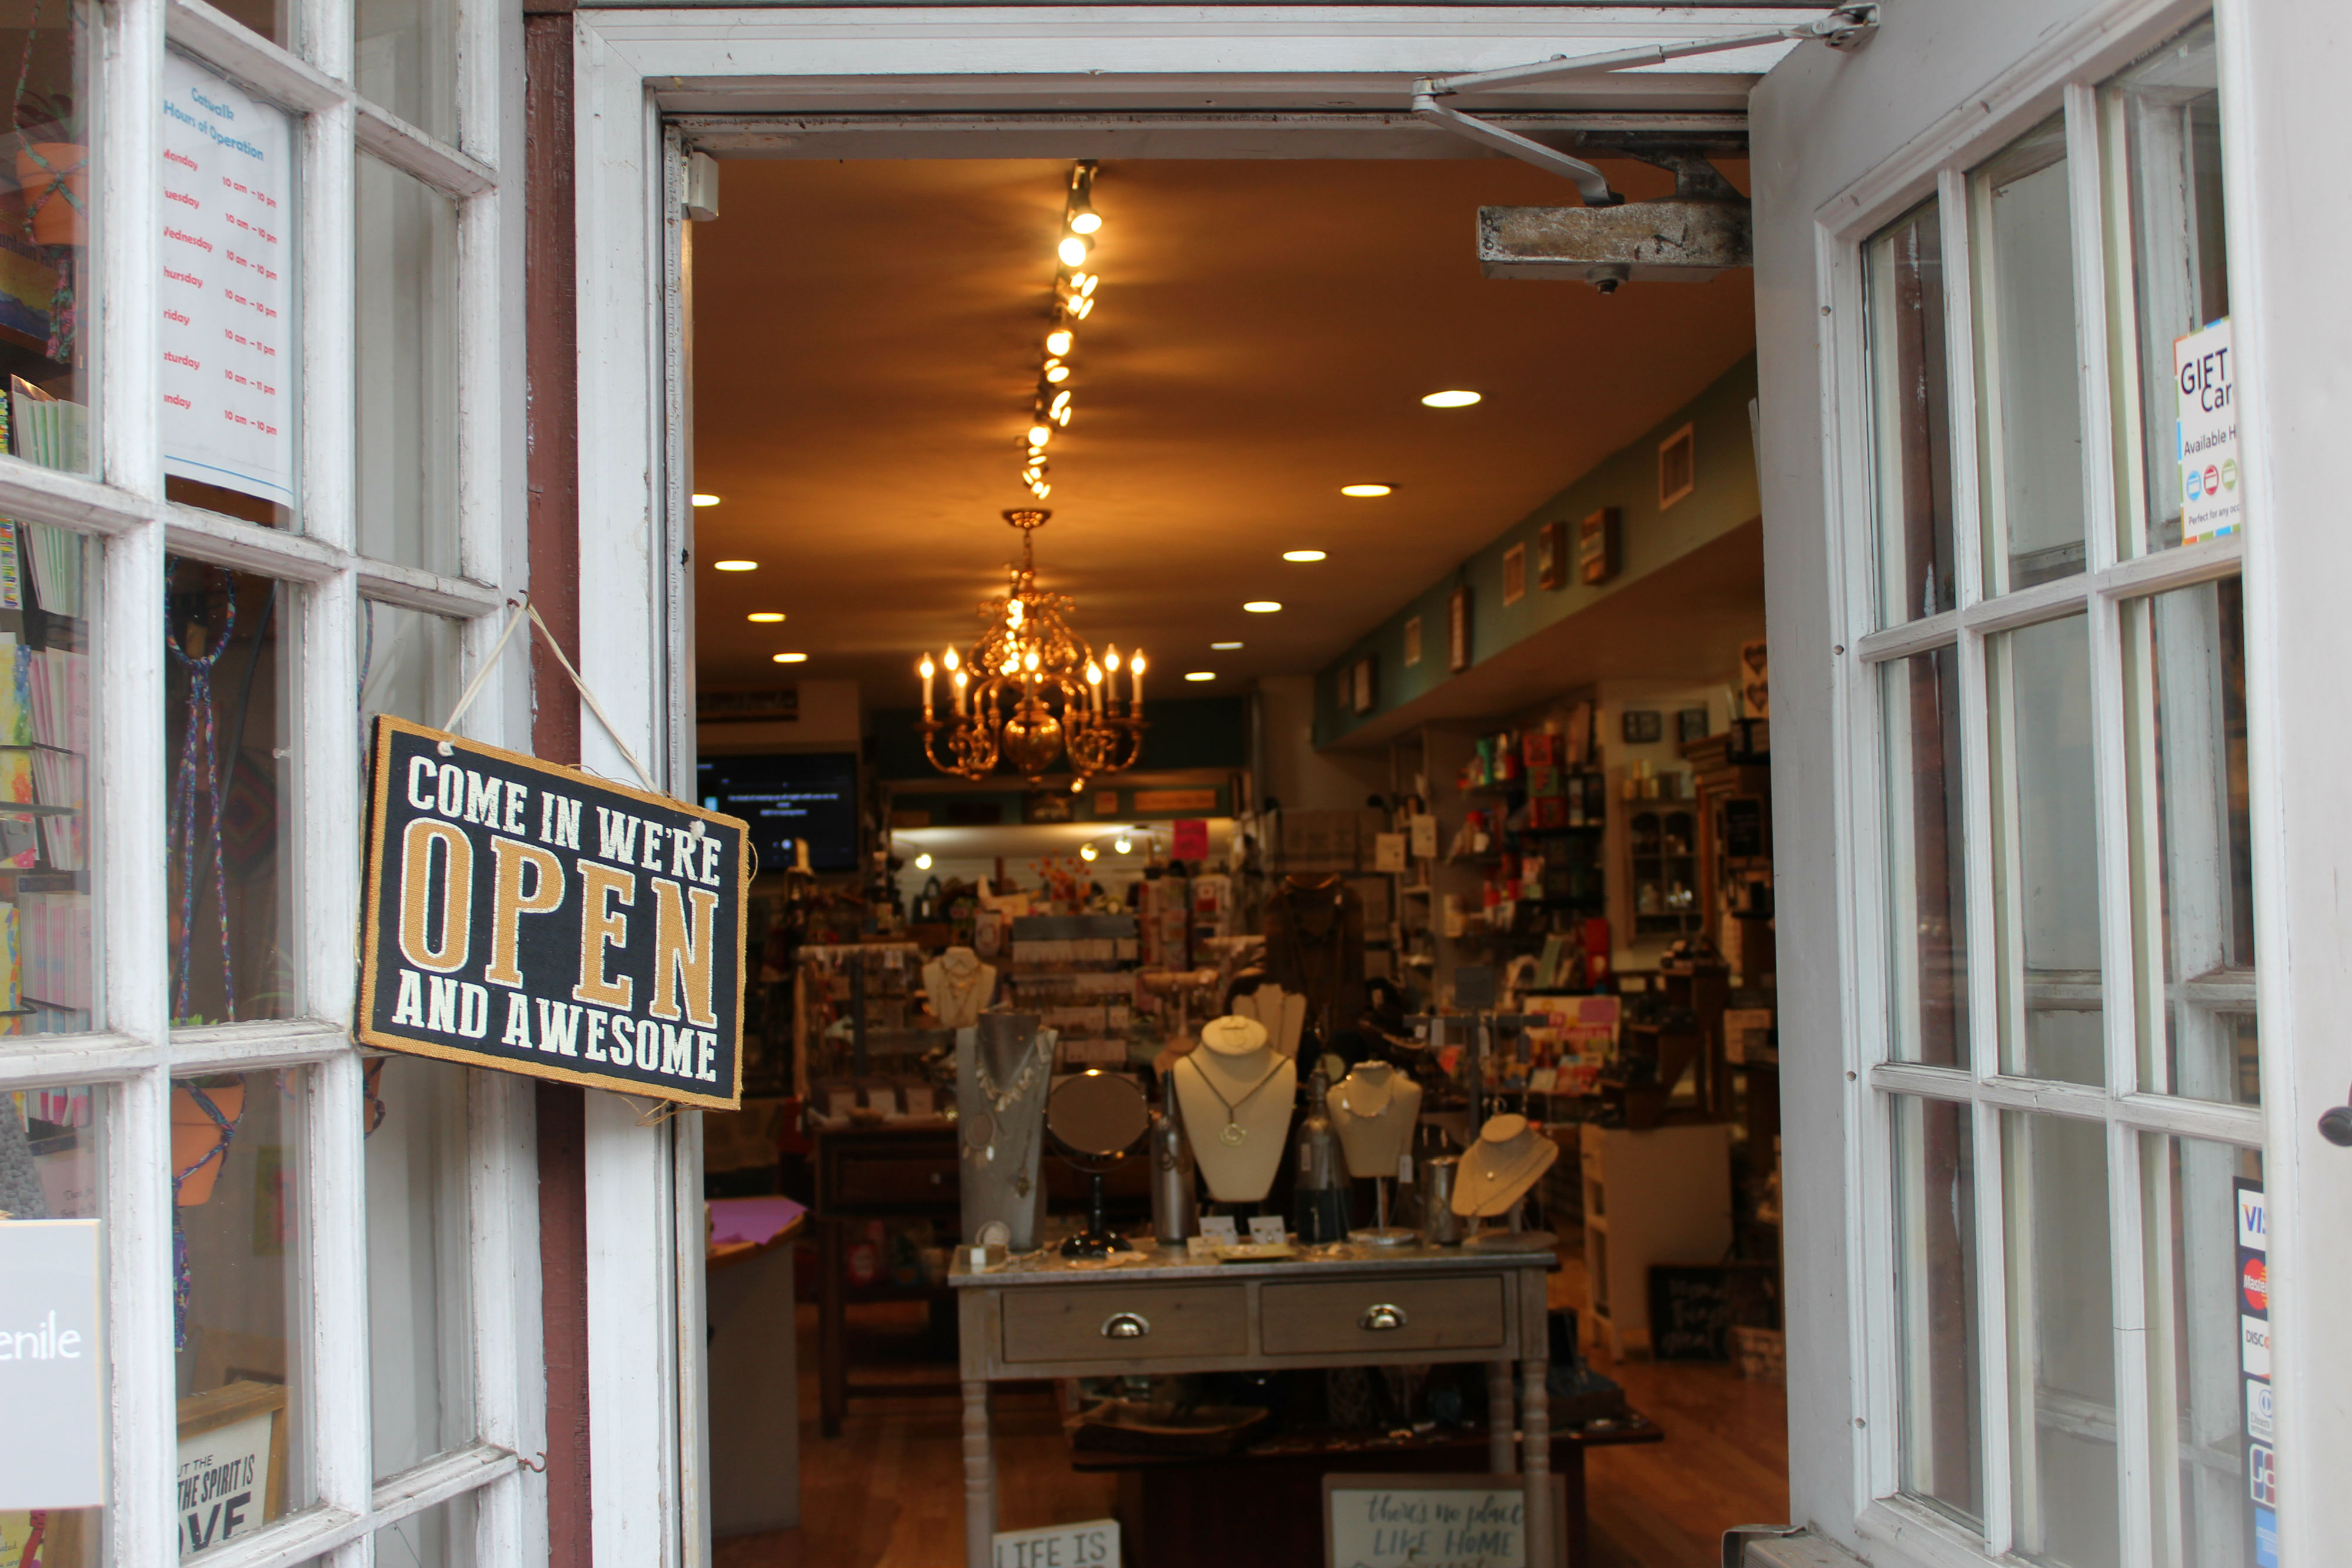 New Hope has an abundance of quirky stores, including fashion boutiques, sex shops, book stores, a tie-dye studio, psychics, ice cream parlors, candy stores, a comic book store, jewelers and more!